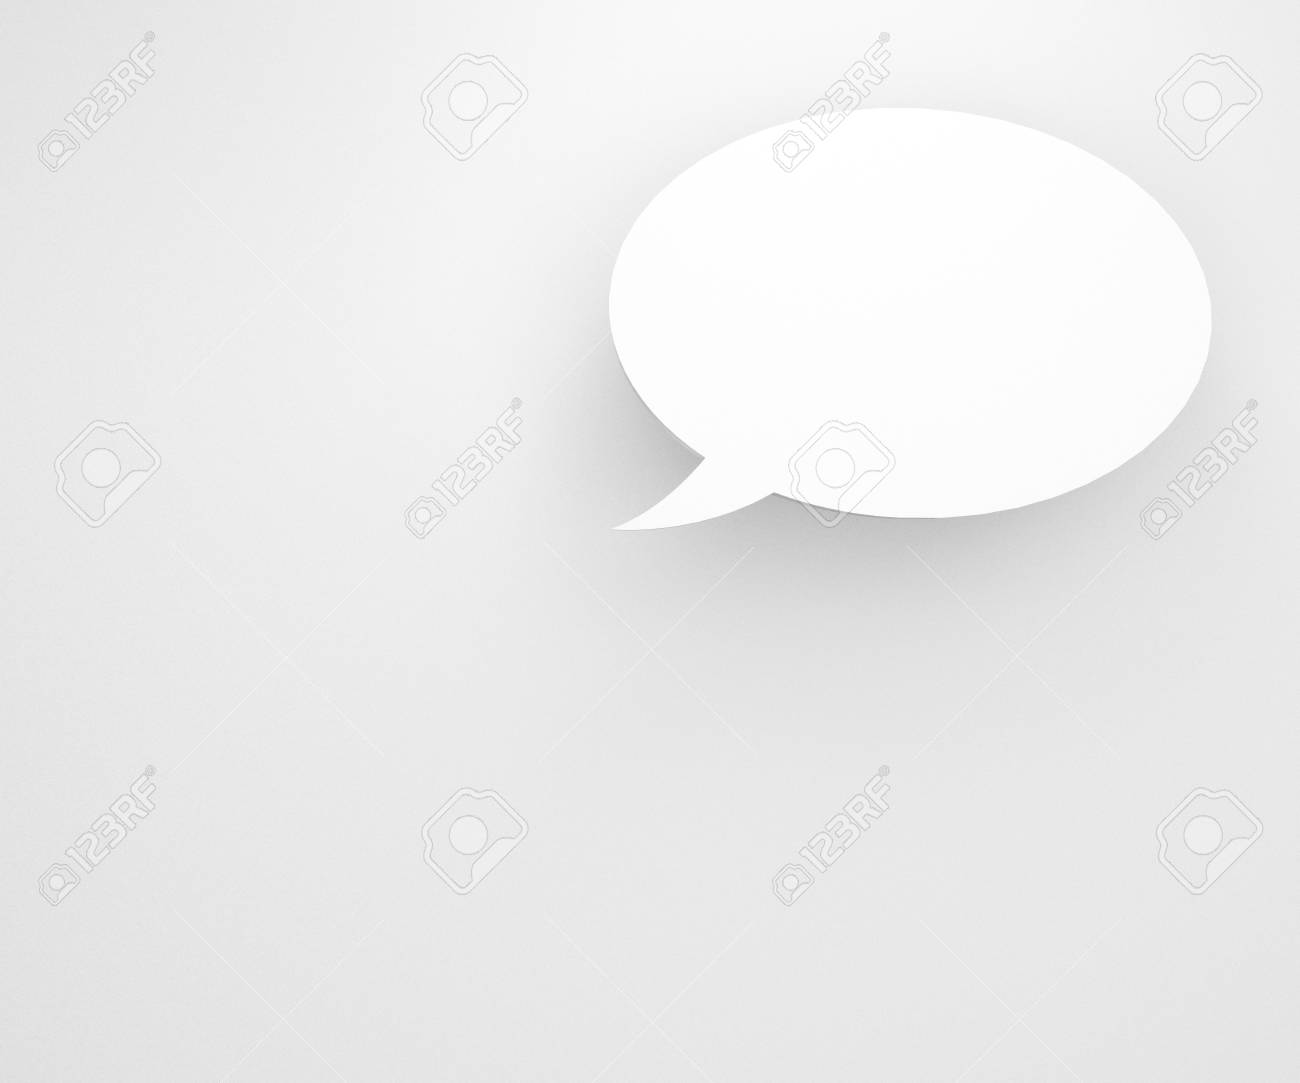 colourful background with talking bubbles, to put person and message over the background. Stock Photo - 17455988